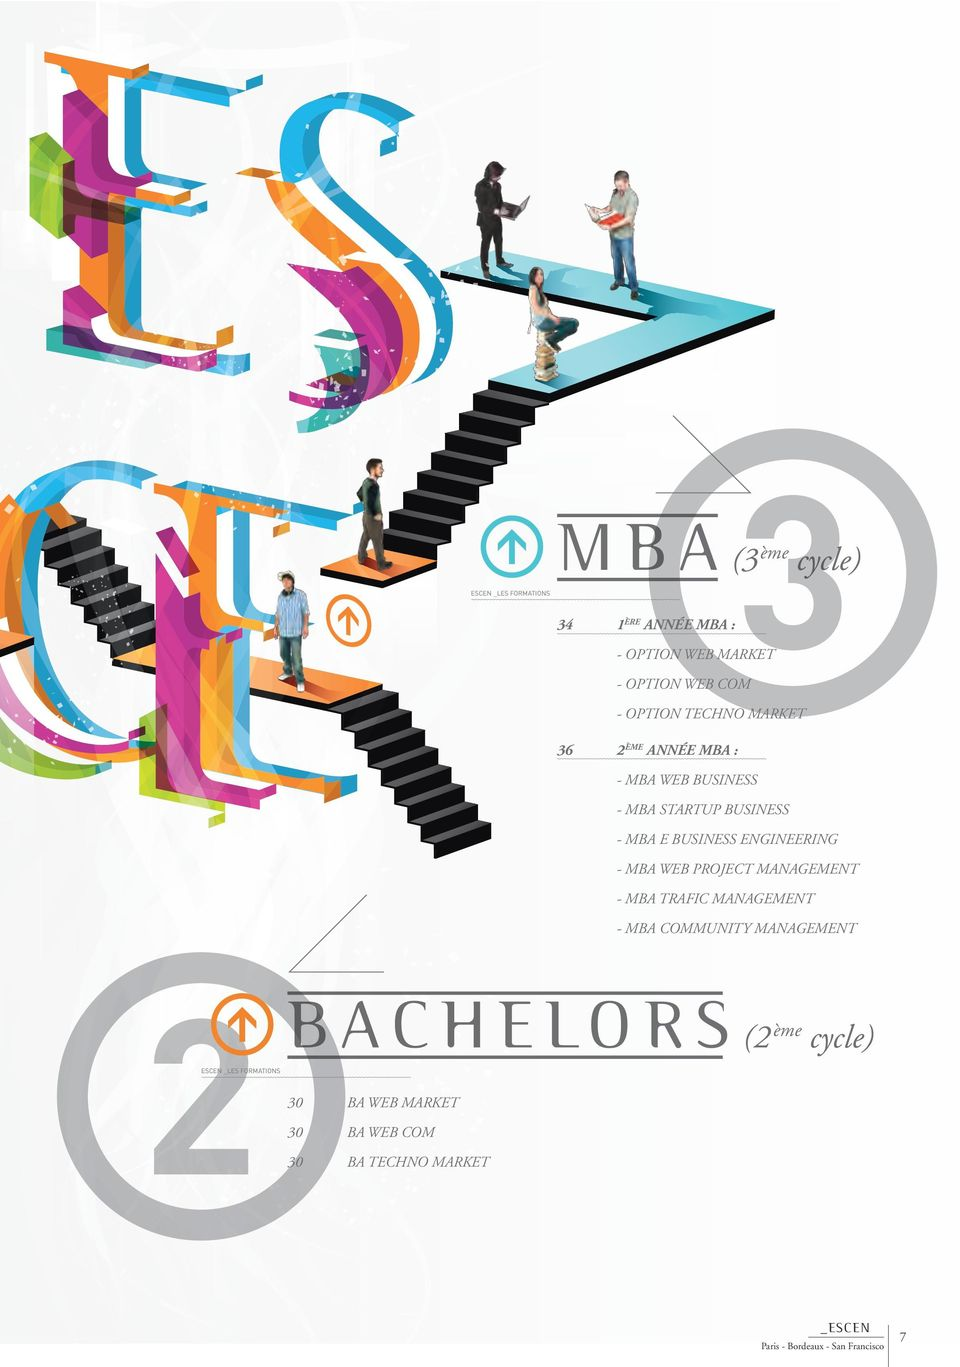 business engineering - mba web project management - mba trafic management - mba Community management